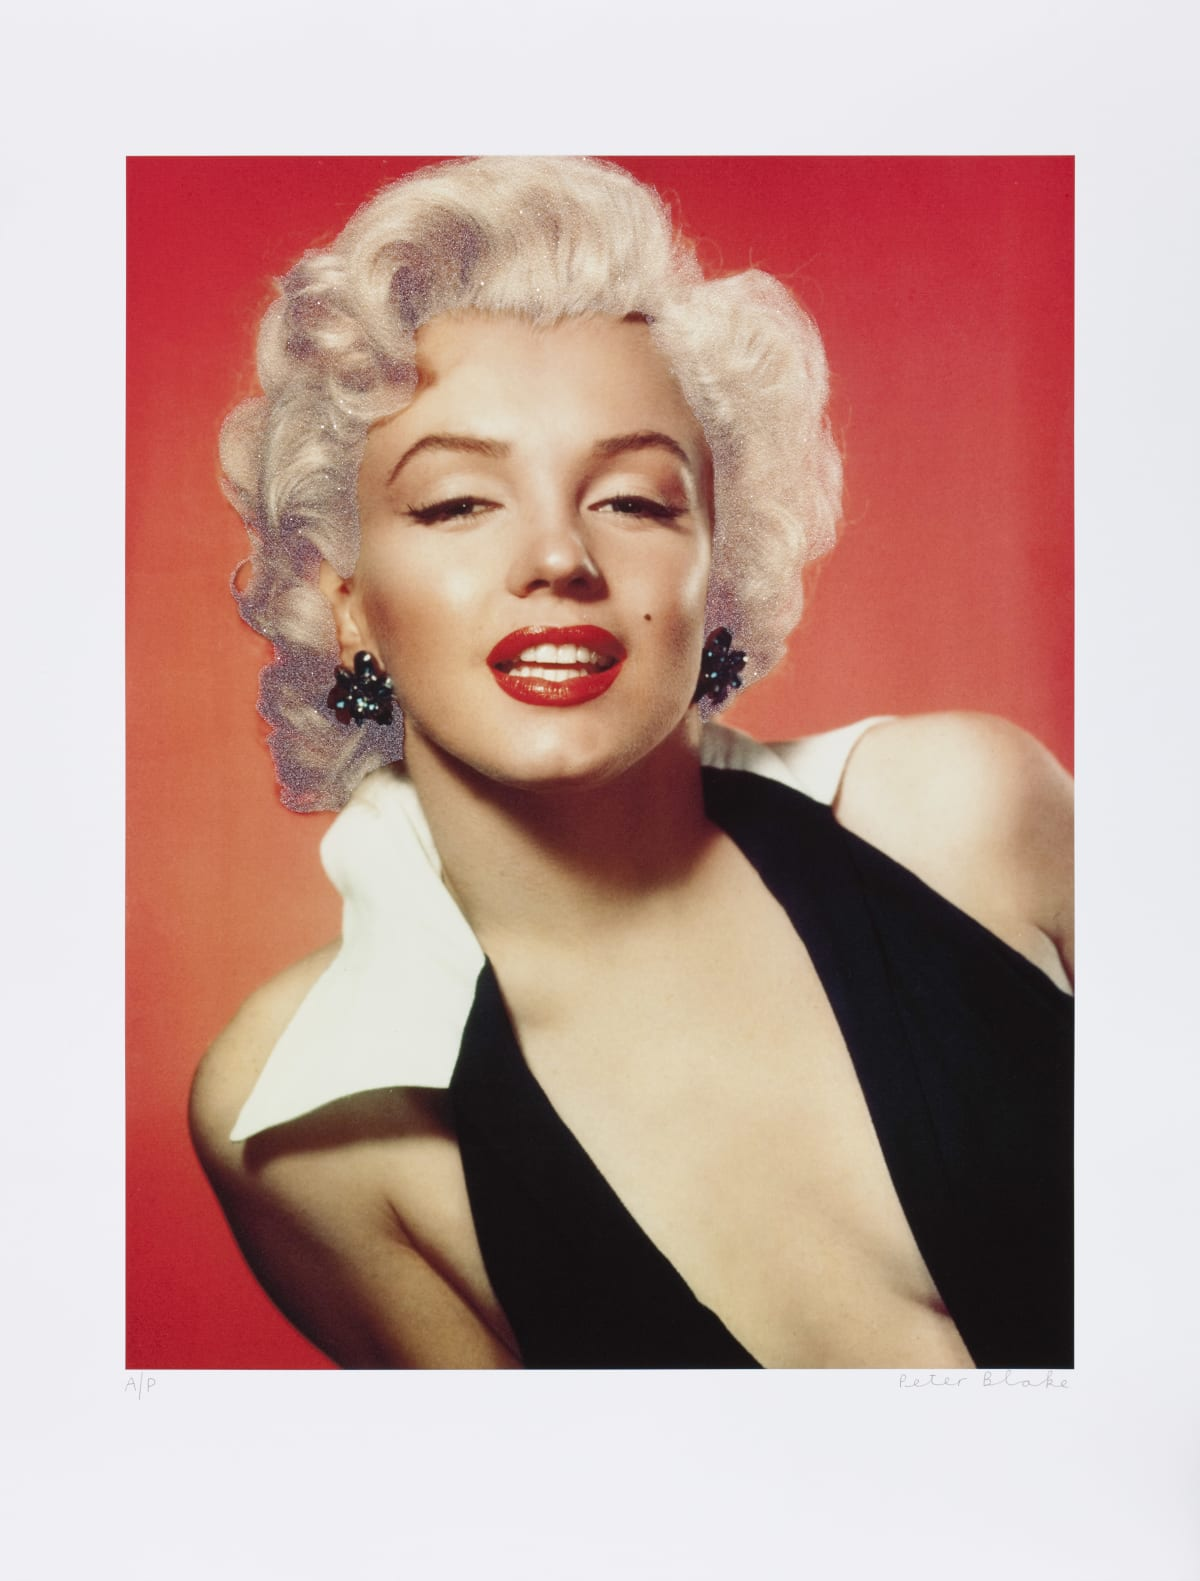 Peter Blake Marilyn, 2010 Silkscreen on Somerset 410gsm with diamond dust. Signed and numbered by the artist. 80 x 63 cm Edition of 150